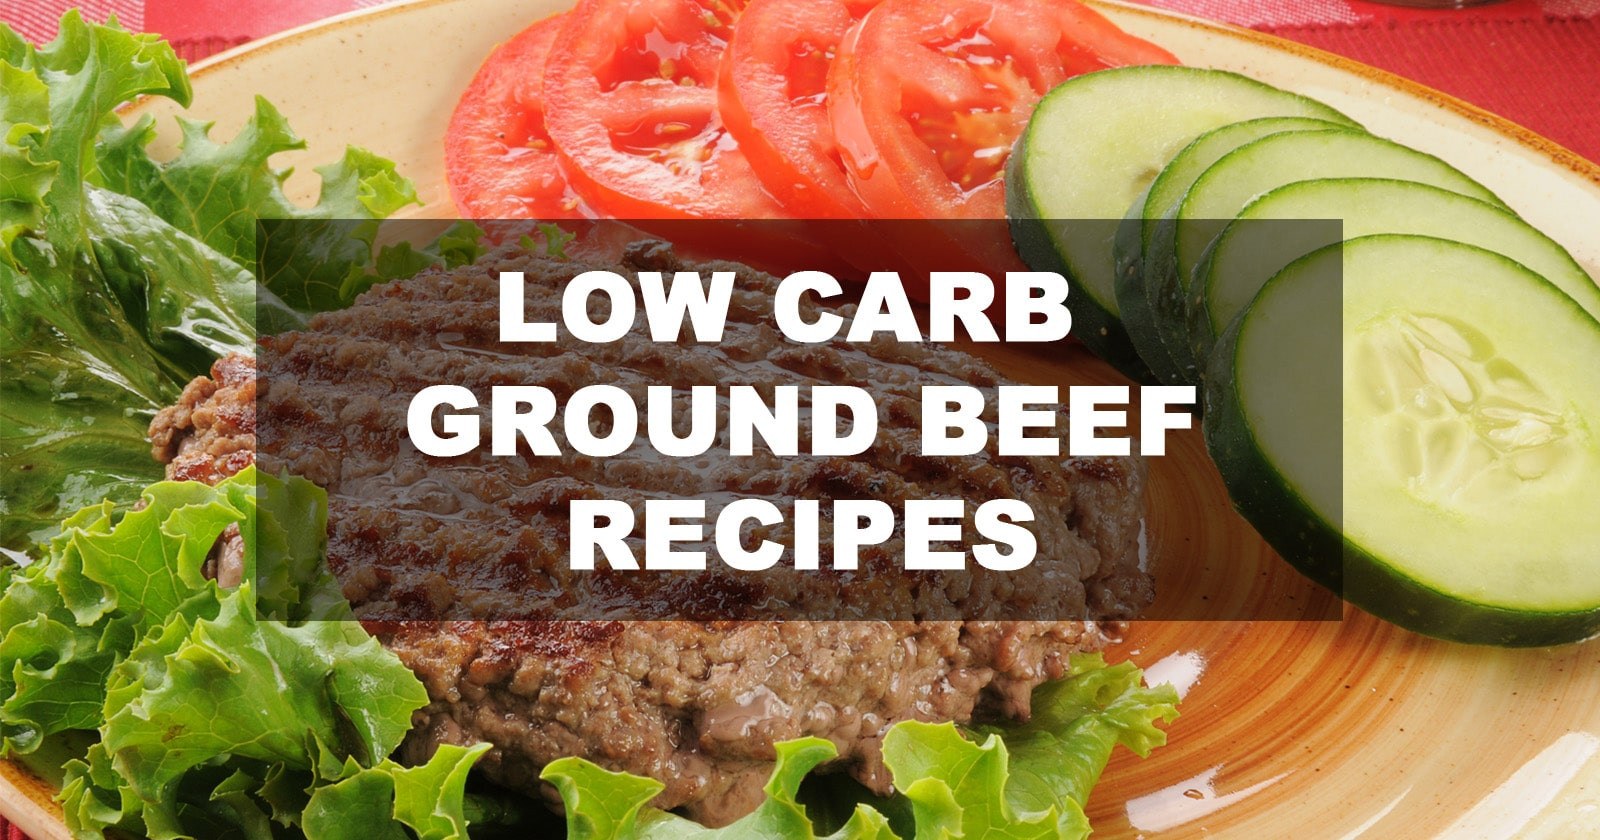 Low Calorie Ground Beef Recipes  Best Low Carb Ground Beef Recipes October 2018